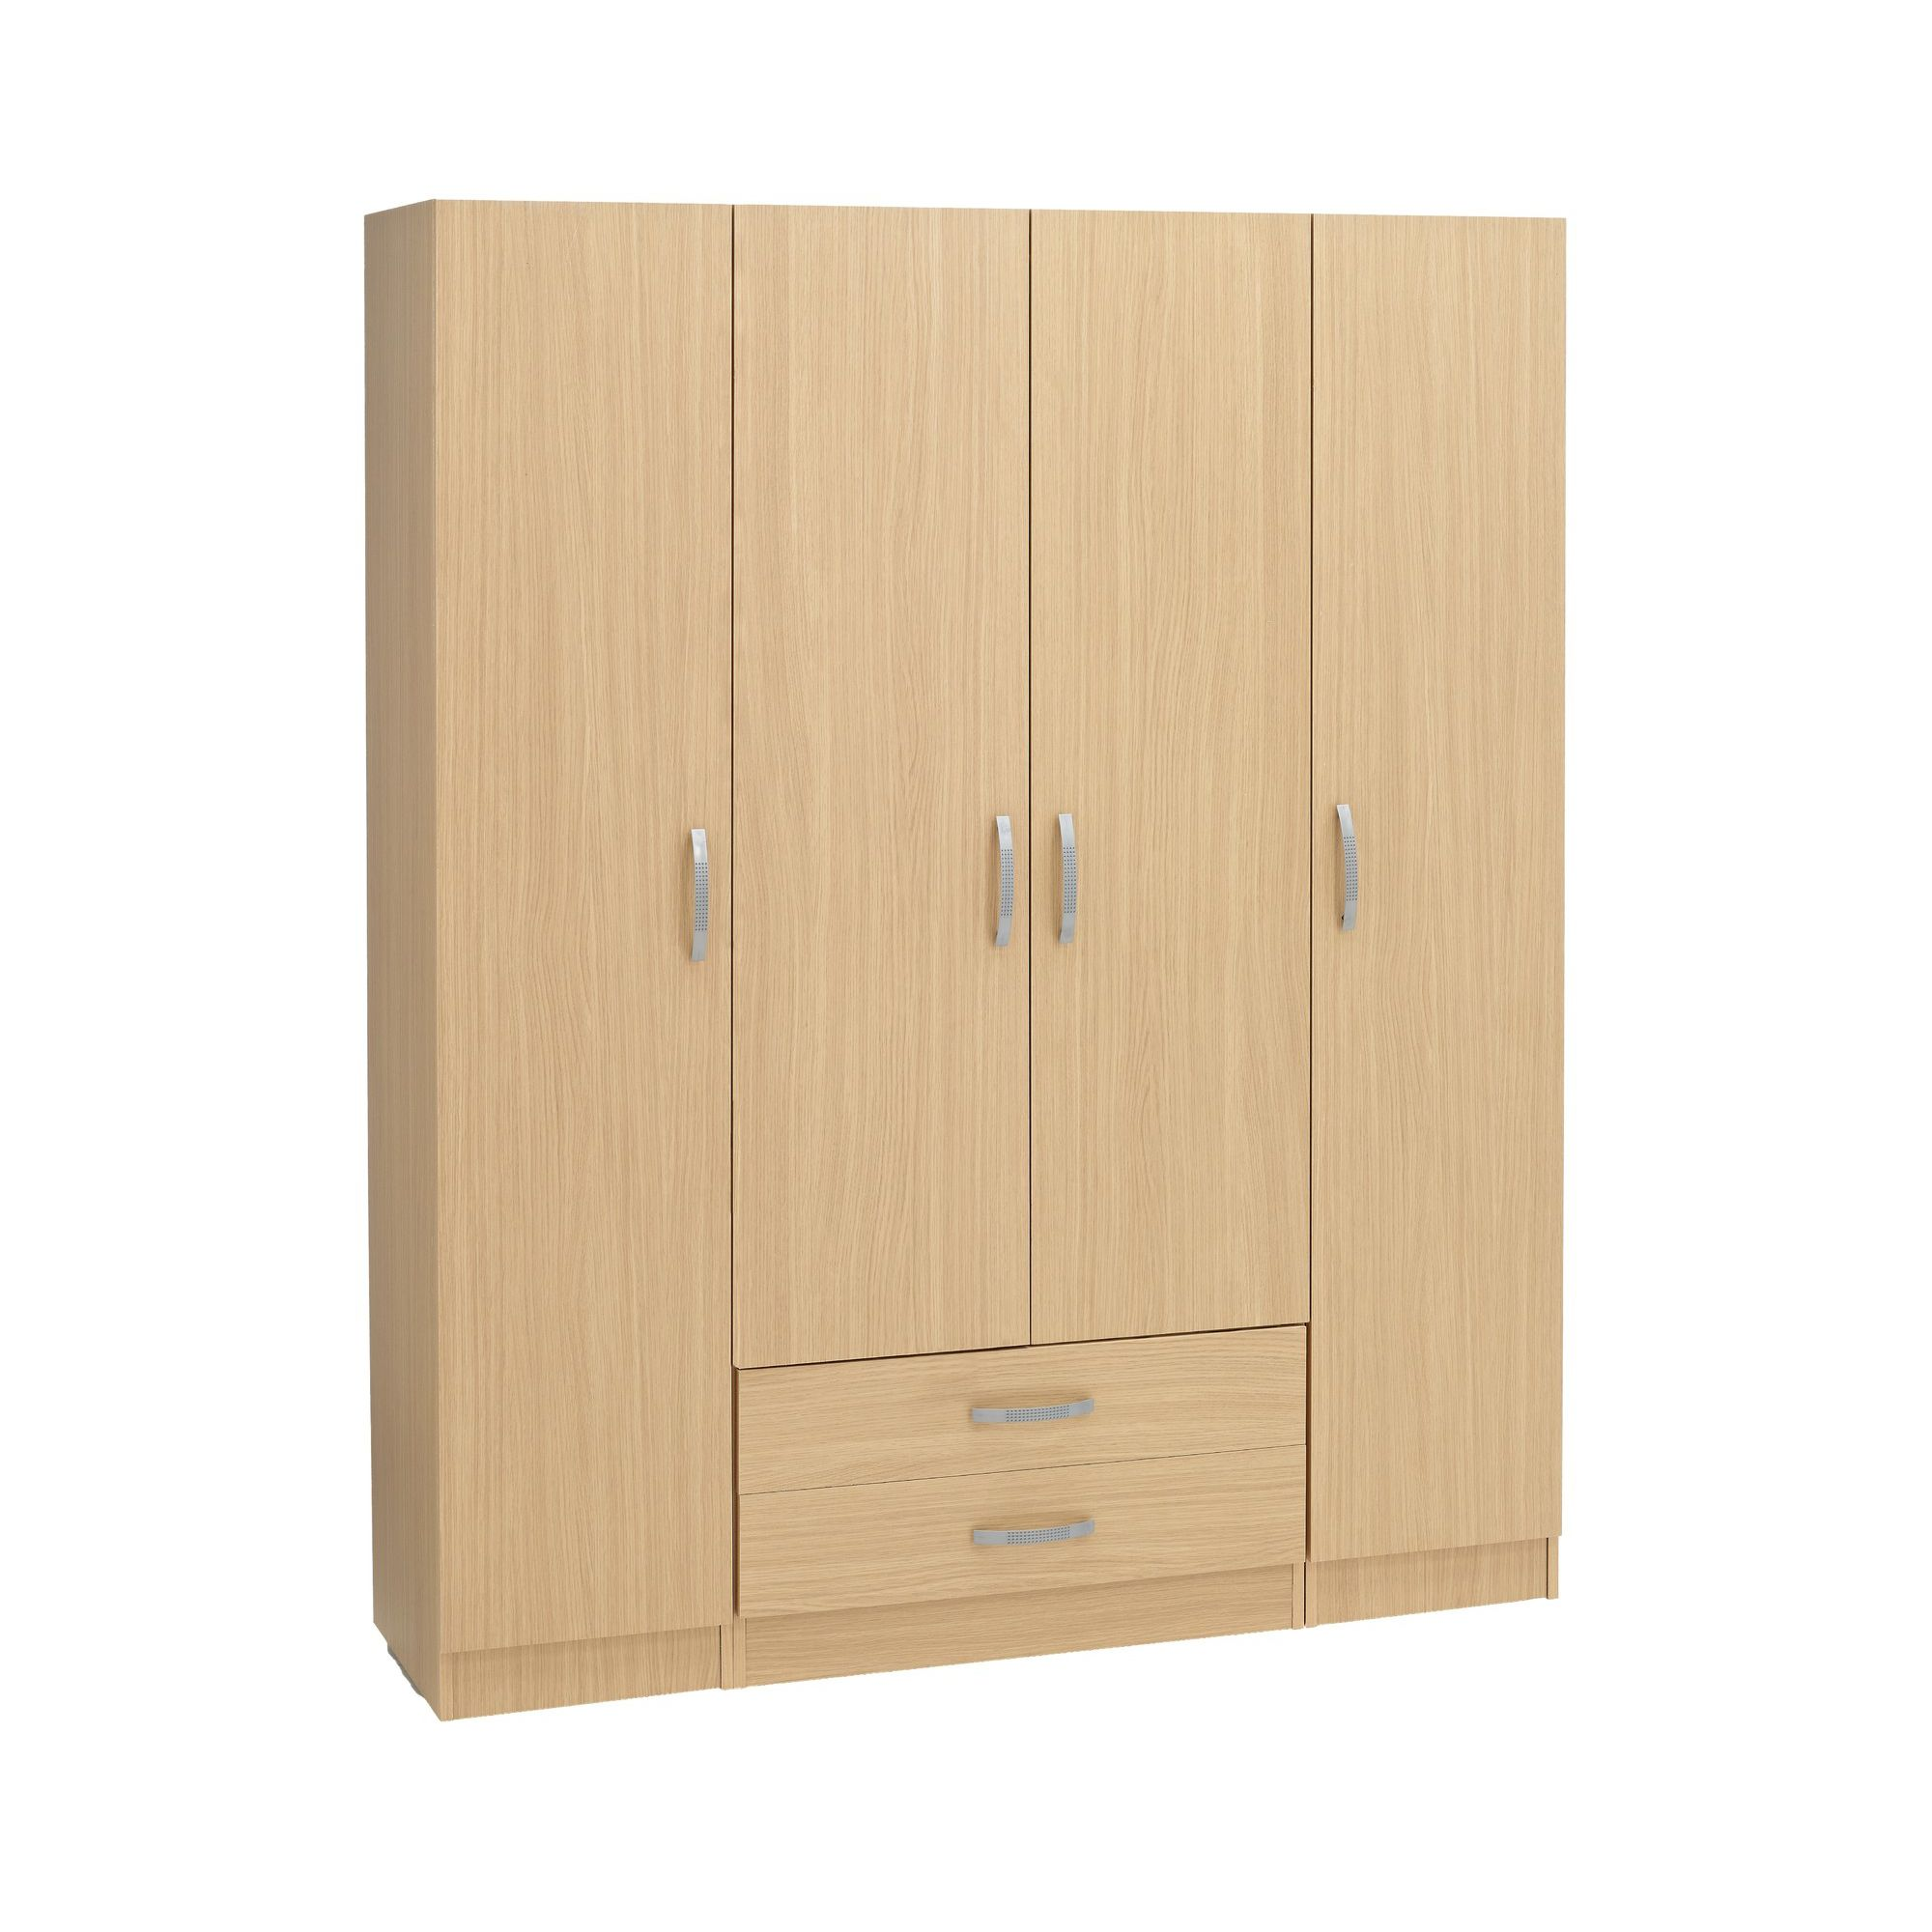 Ideal Furniture Budapest 4 Door Wardrobe - Beech at Tesco Direct